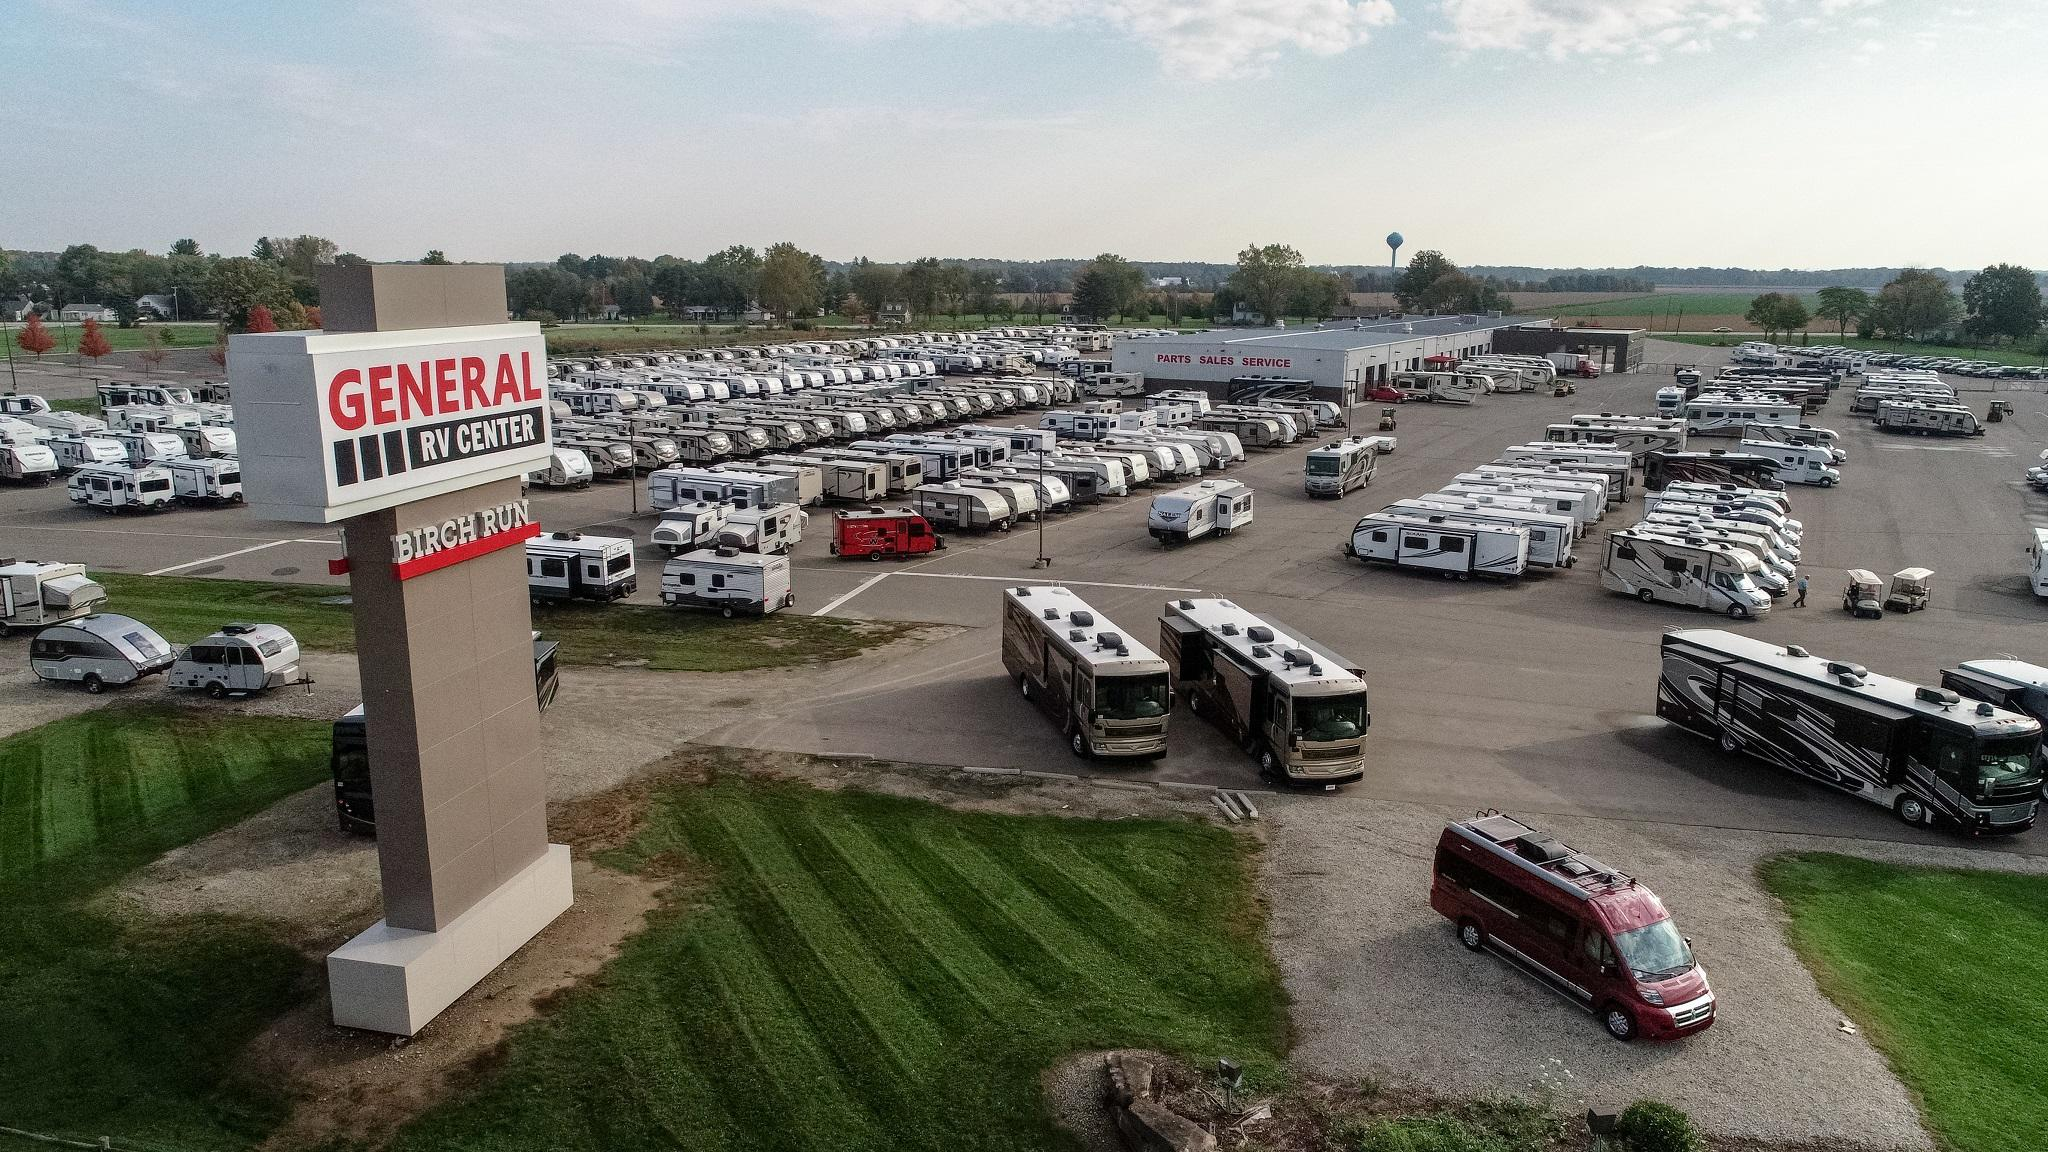 General RV Center image 2